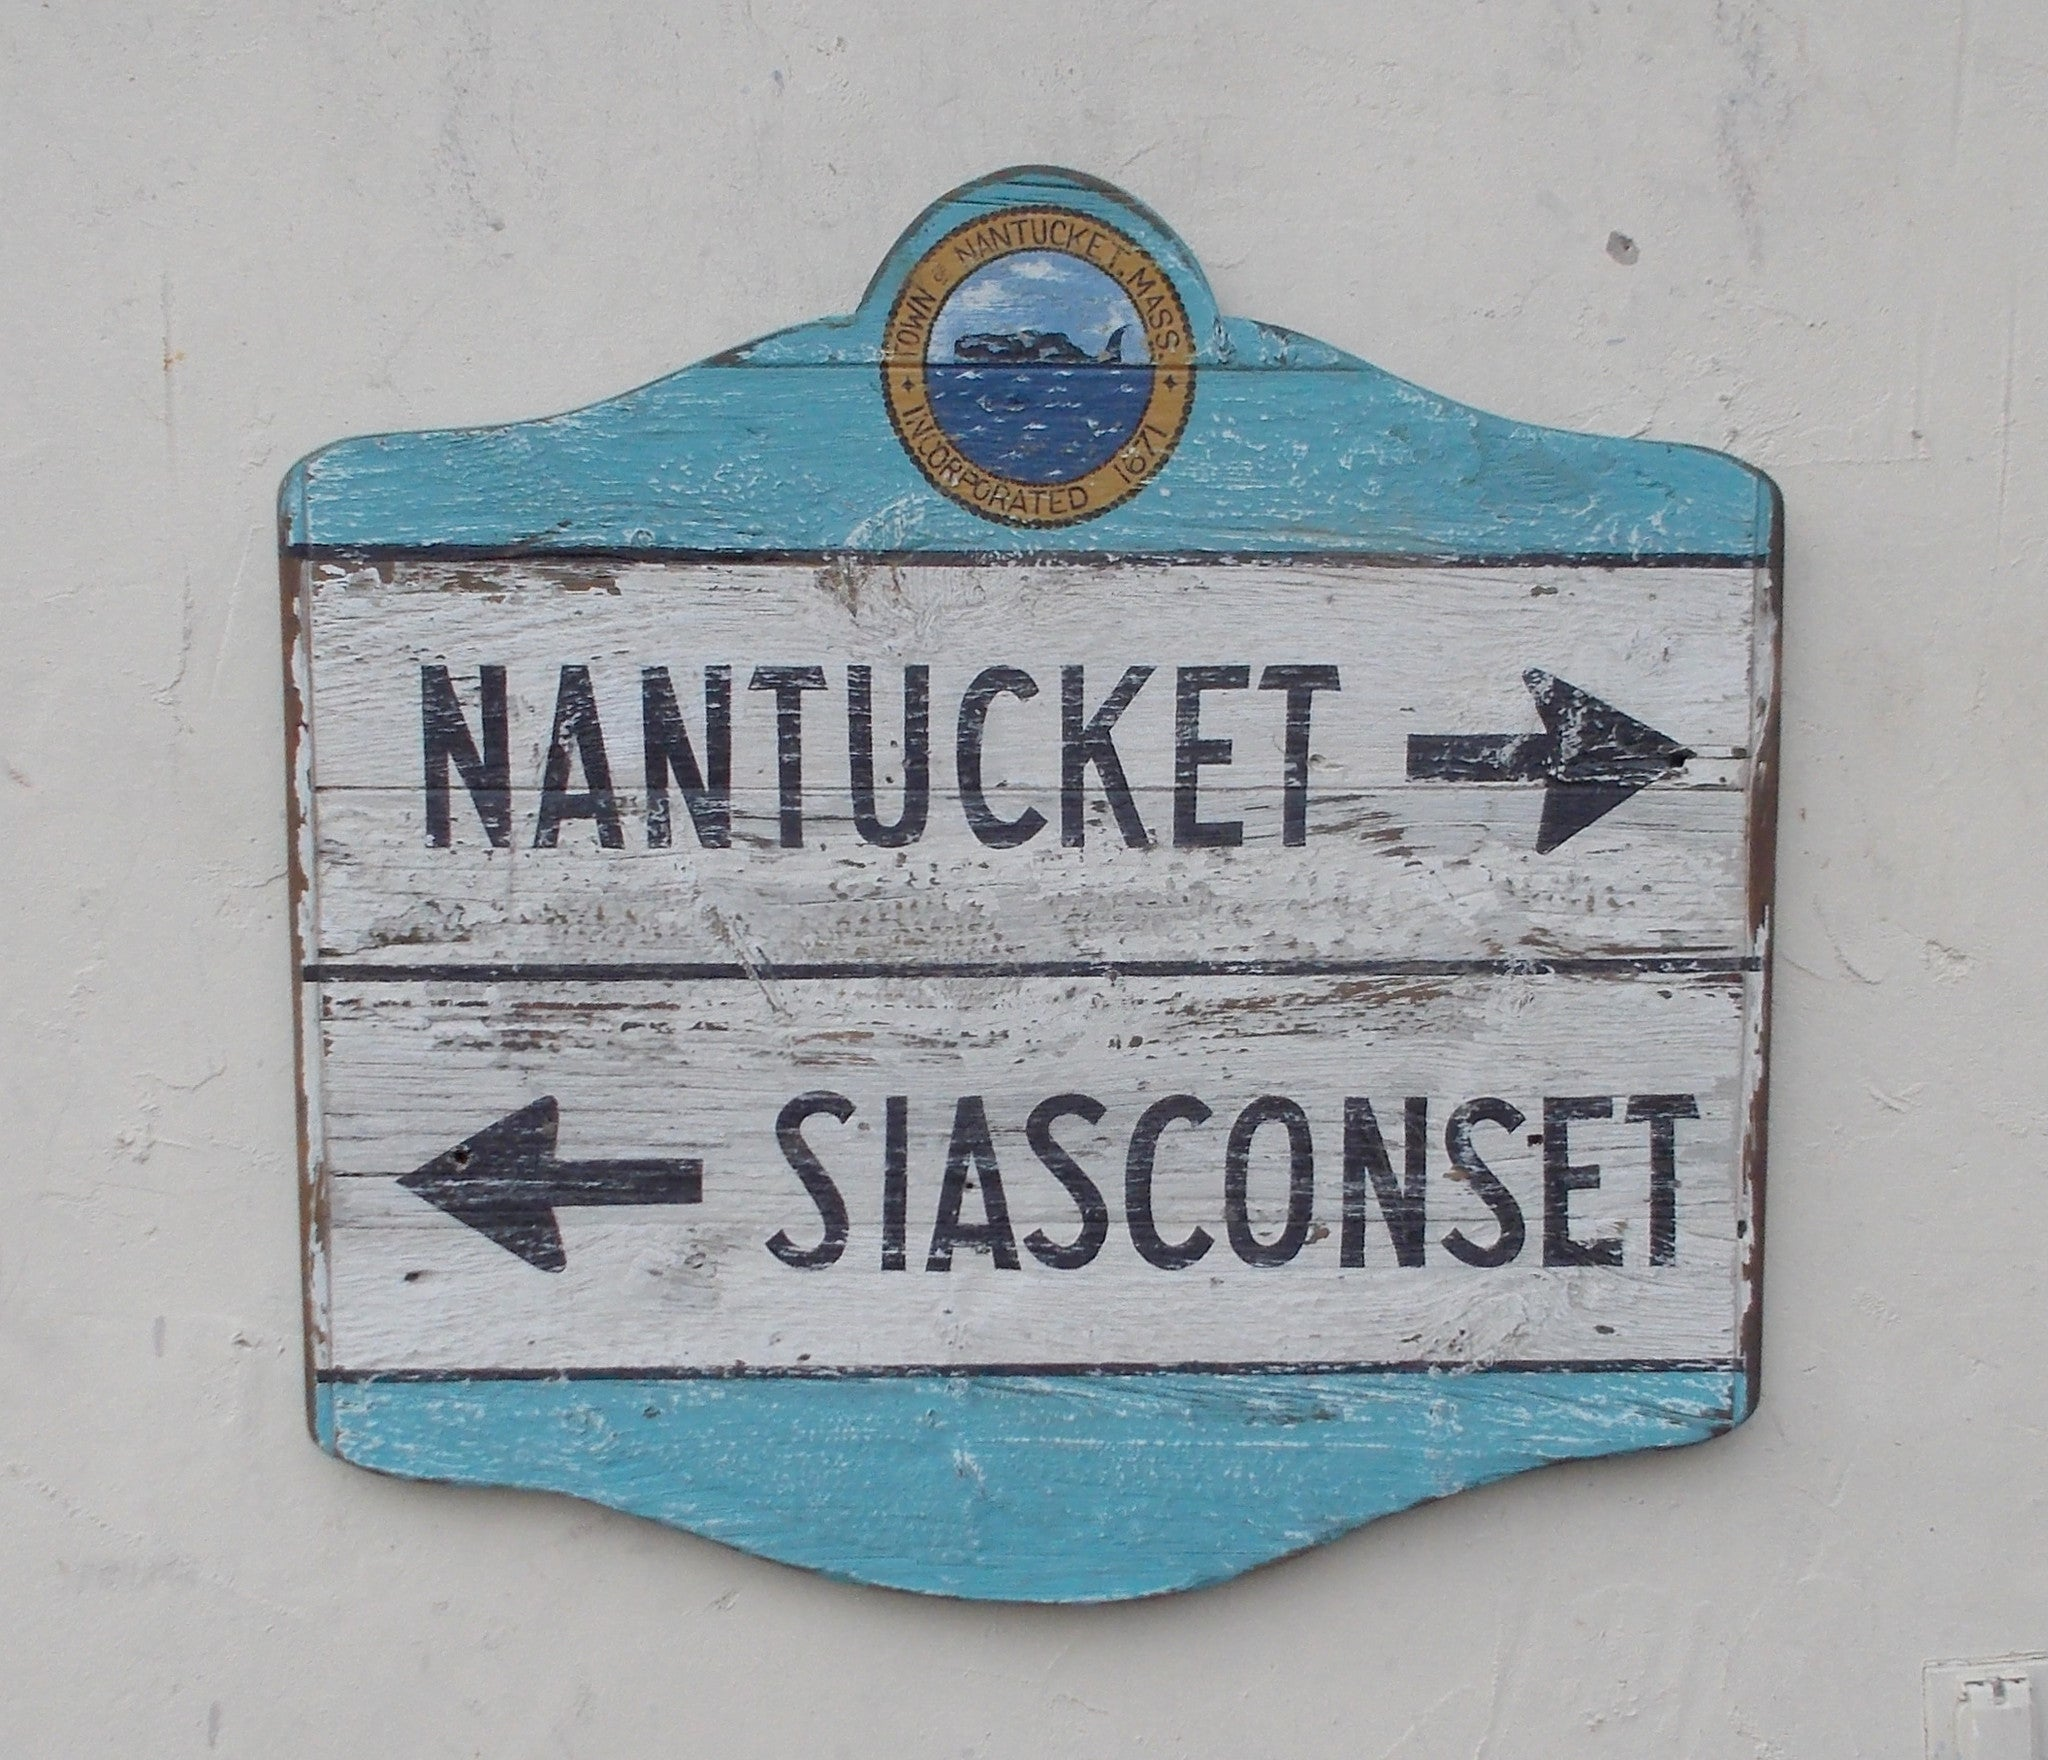 Nantucket Siasconset Directional sign